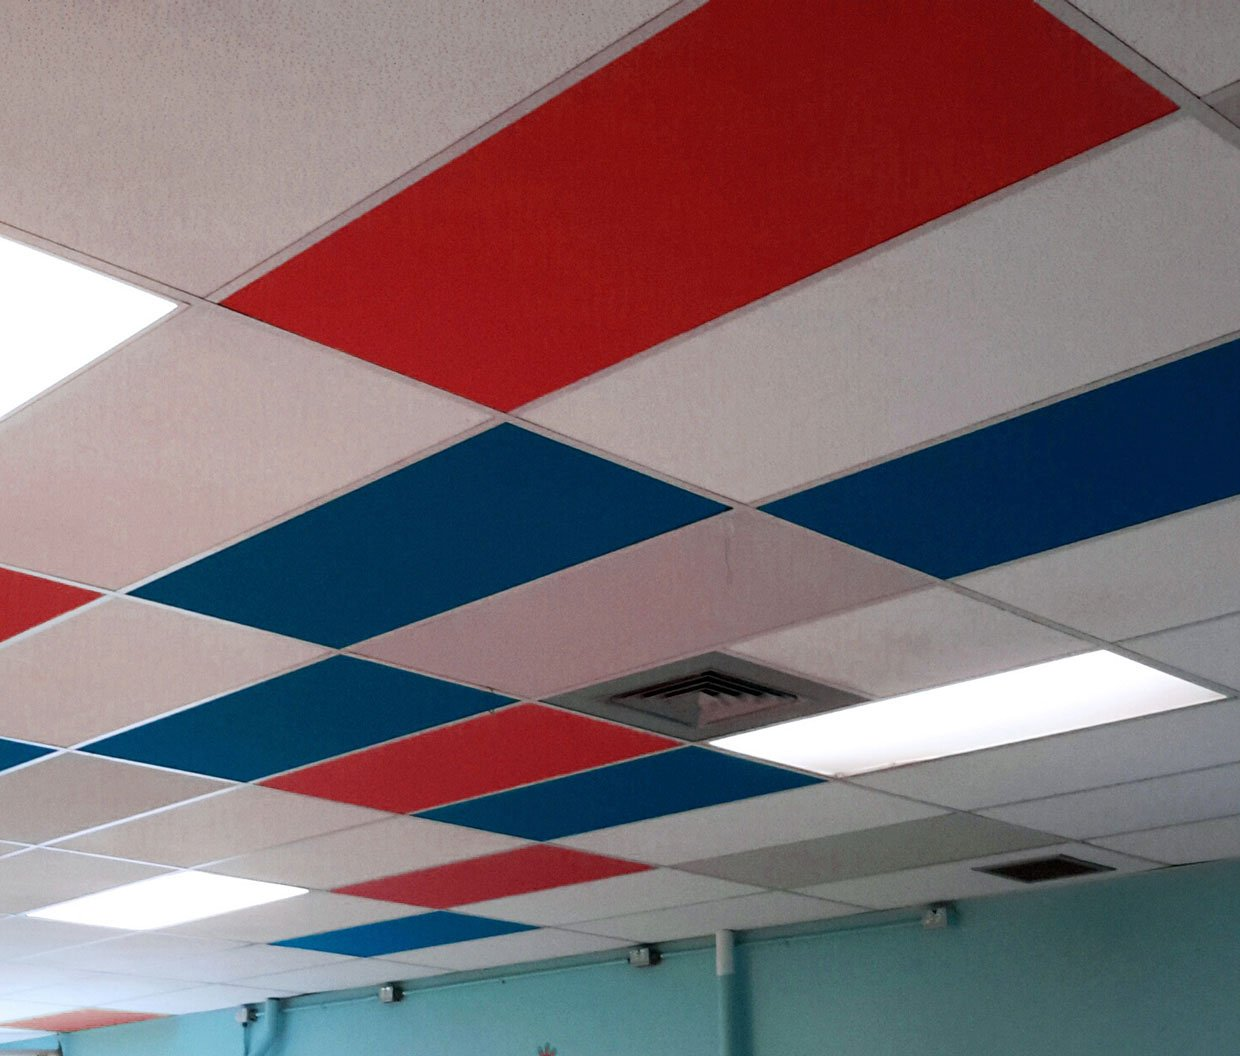 tile of tiles ceiling suspended cheap idea acoustic soundproof apartment wiki